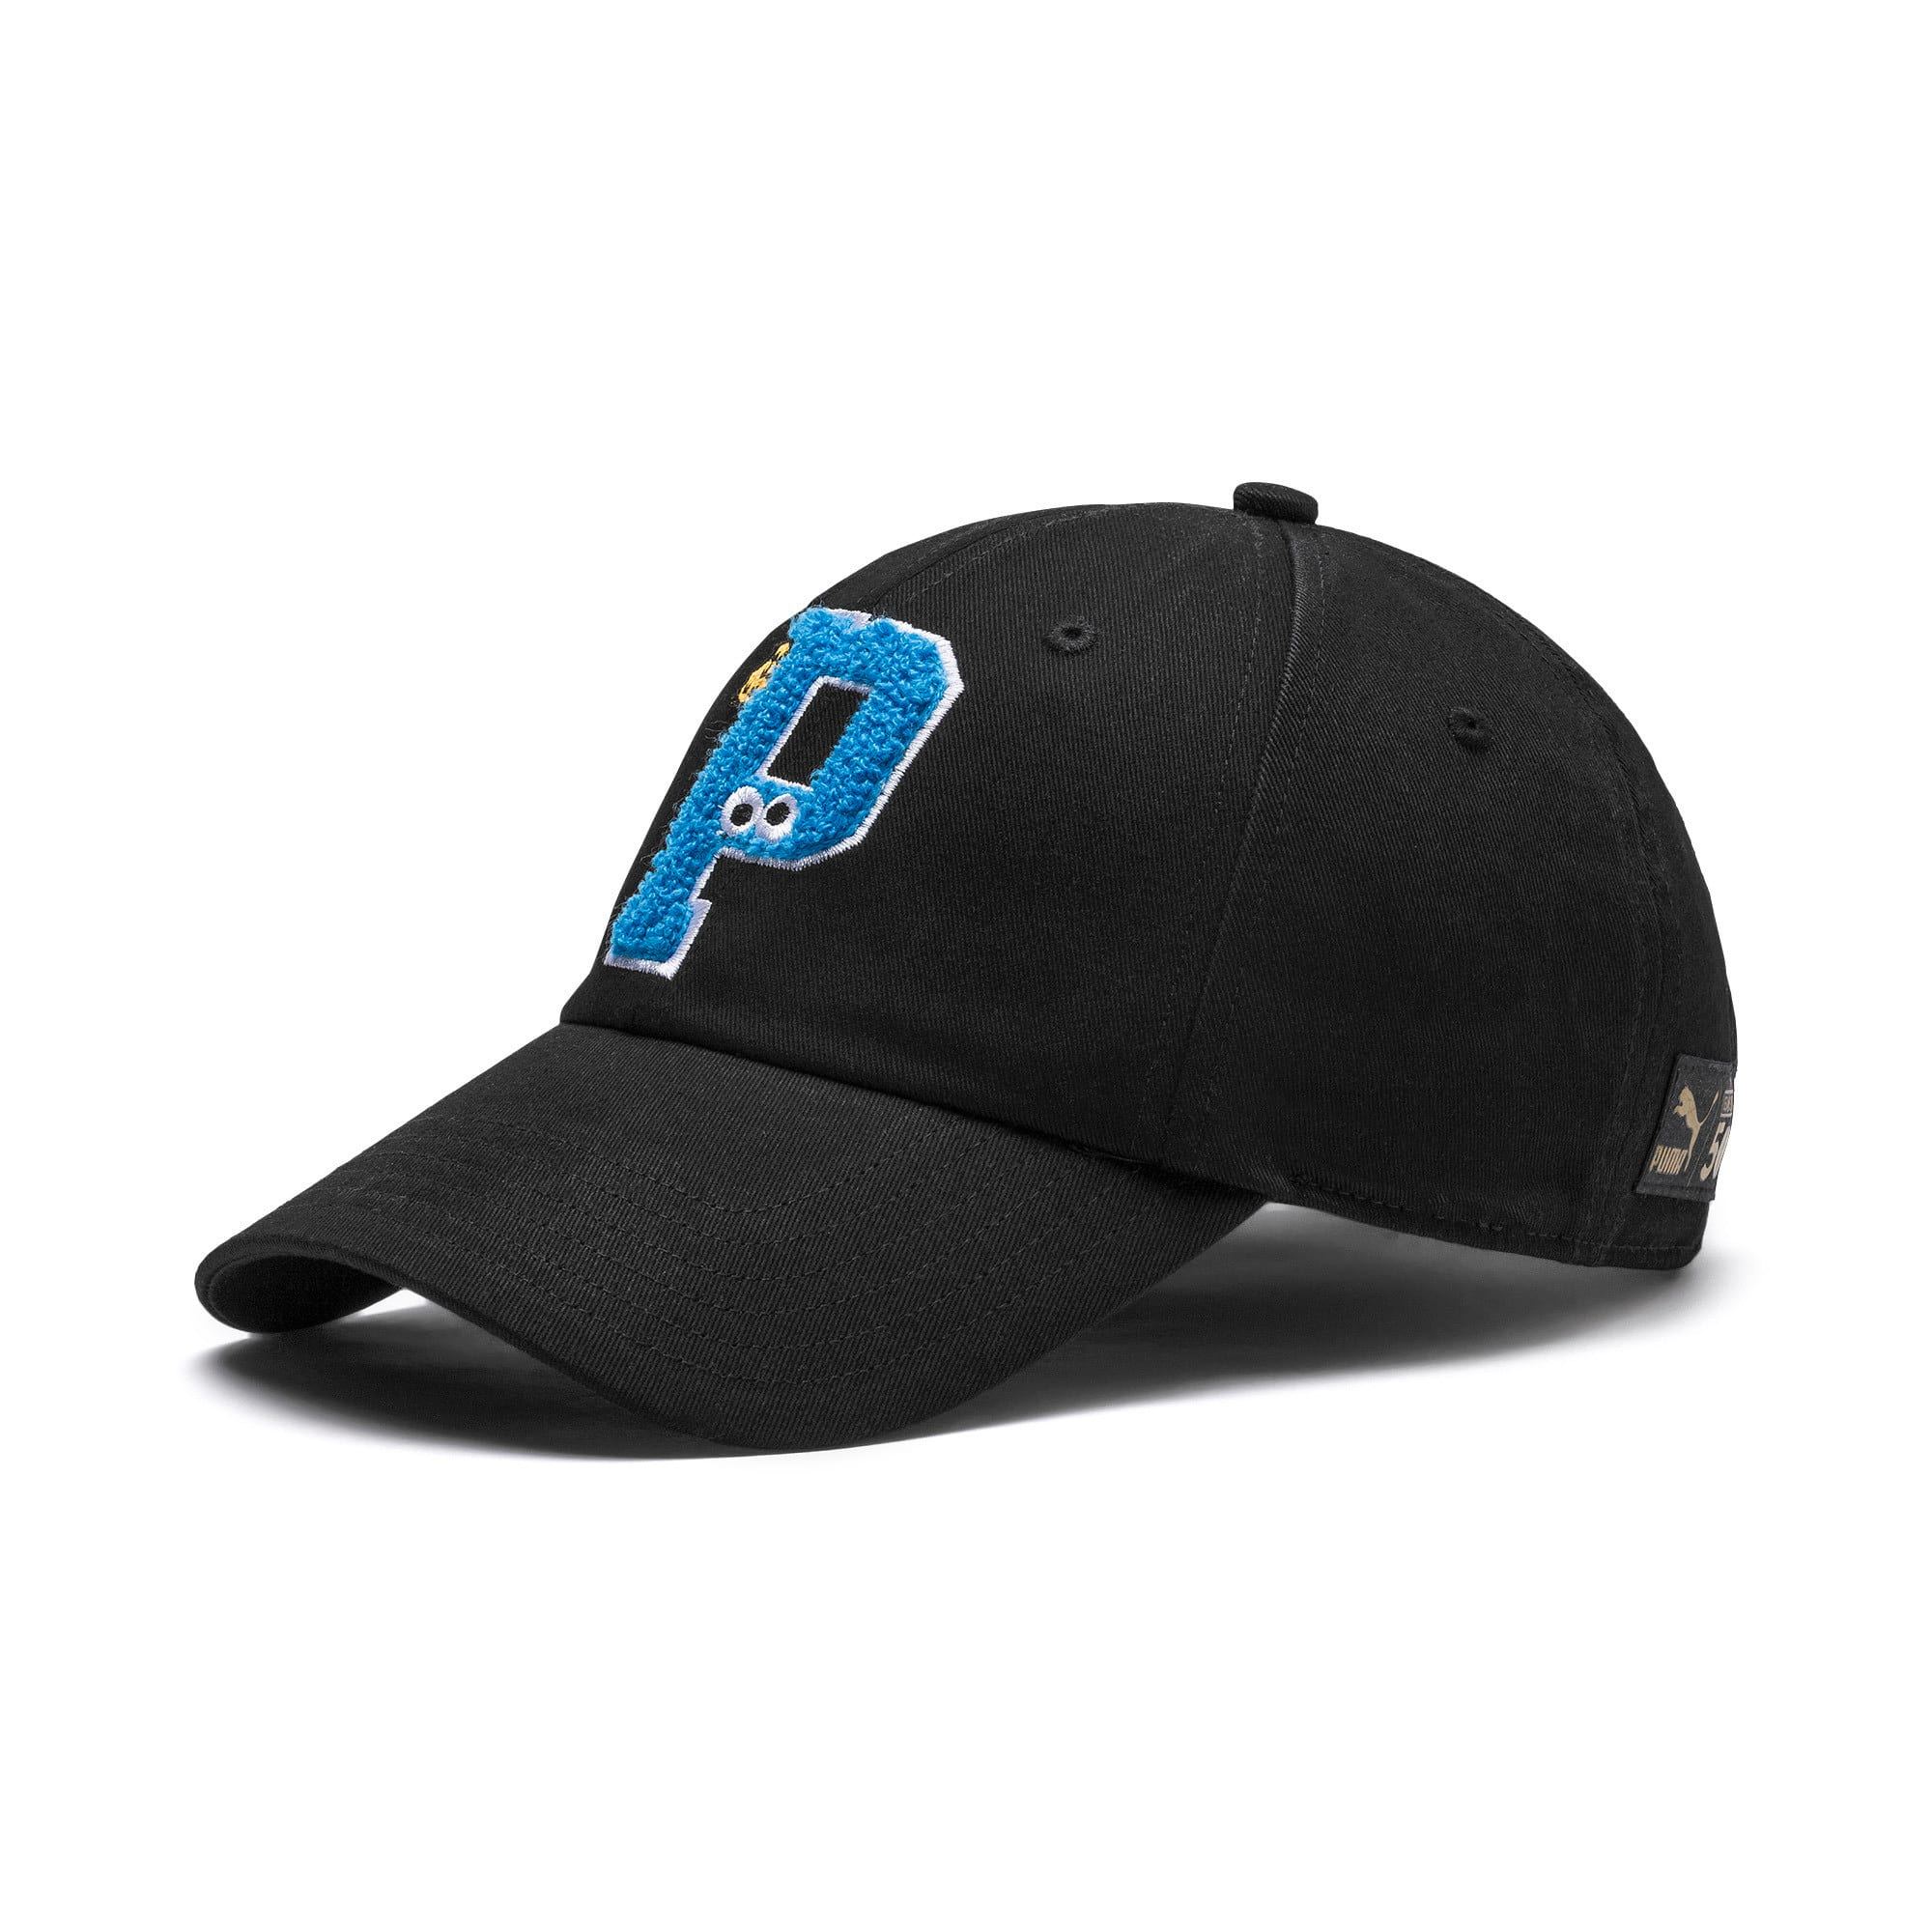 Thumbnail 1 of PUMA x SESAME STREET Kids' Baseball Cap, Puma Black, medium